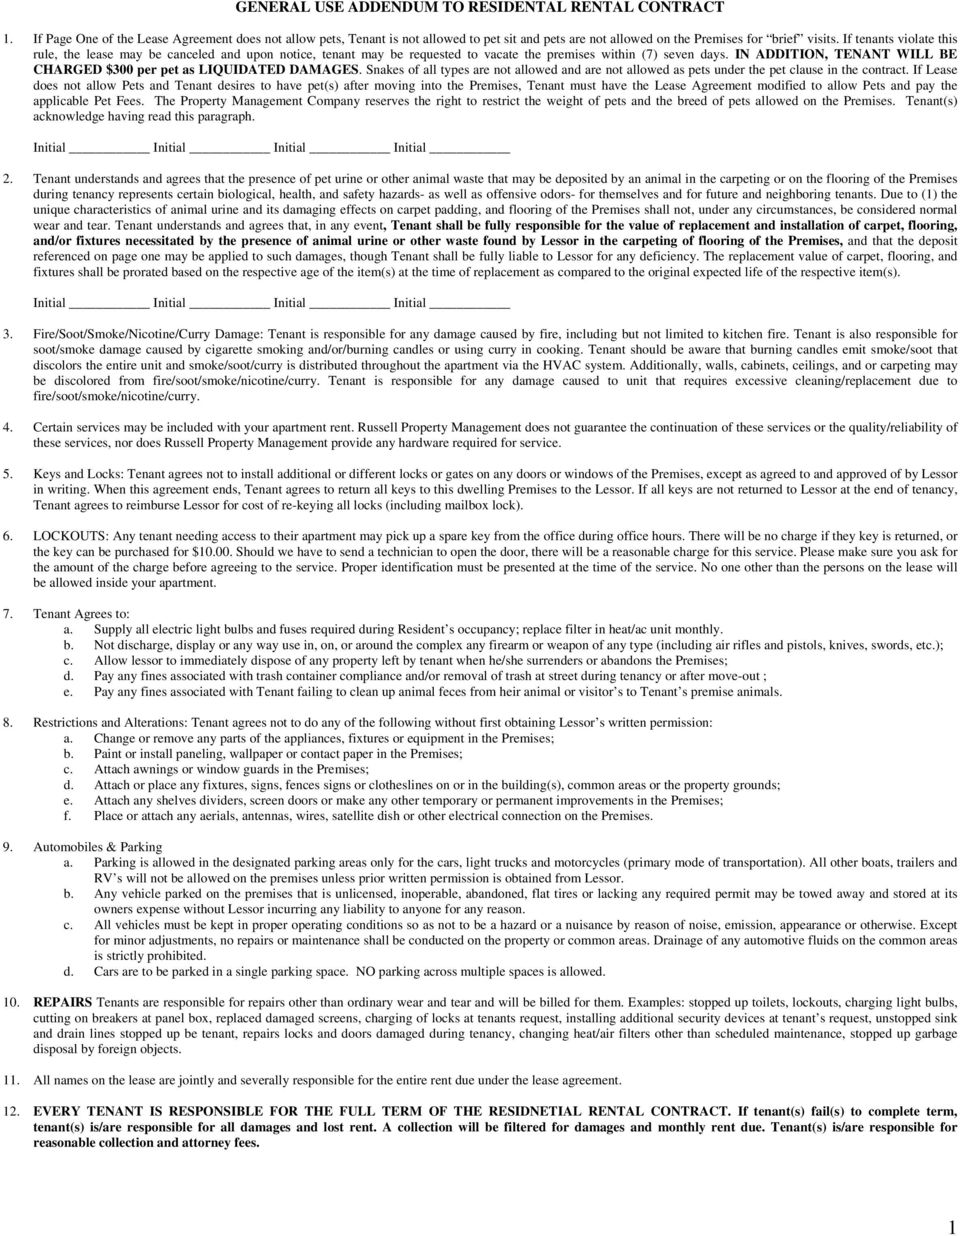 General Use Addendum To Residental Rental Contract Pdf